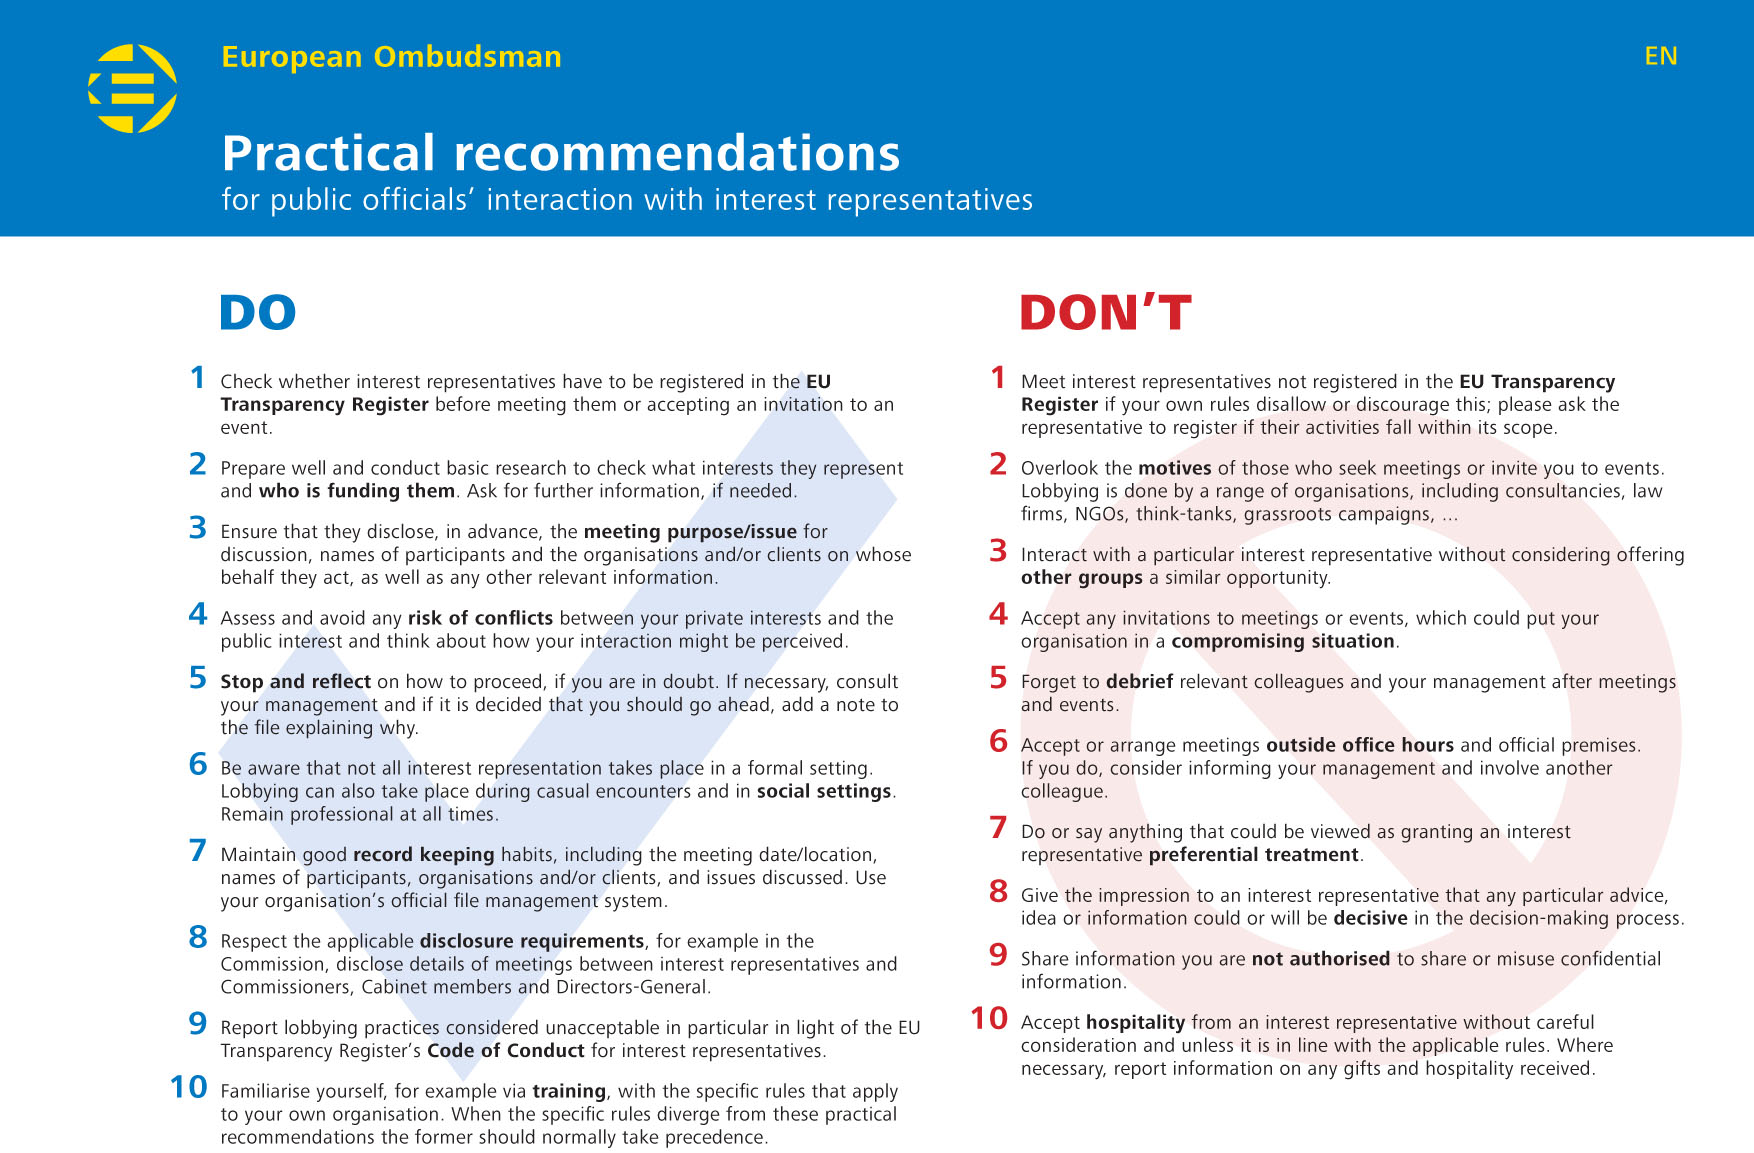 Practical recommendations for public officials' interaction with interest representatives